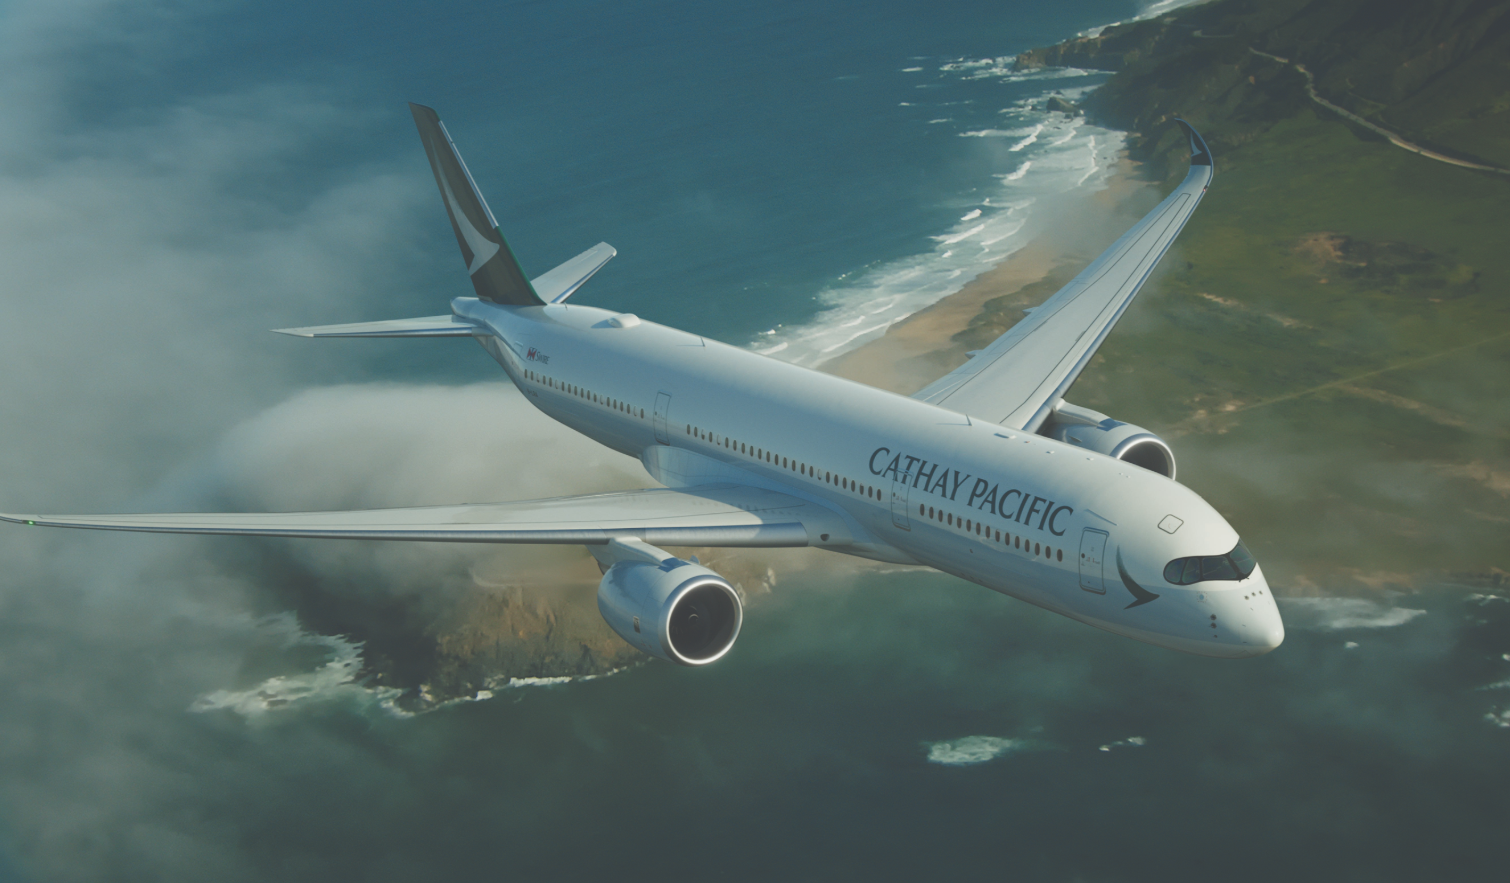 Cathay Pacific selecteert LEWIS